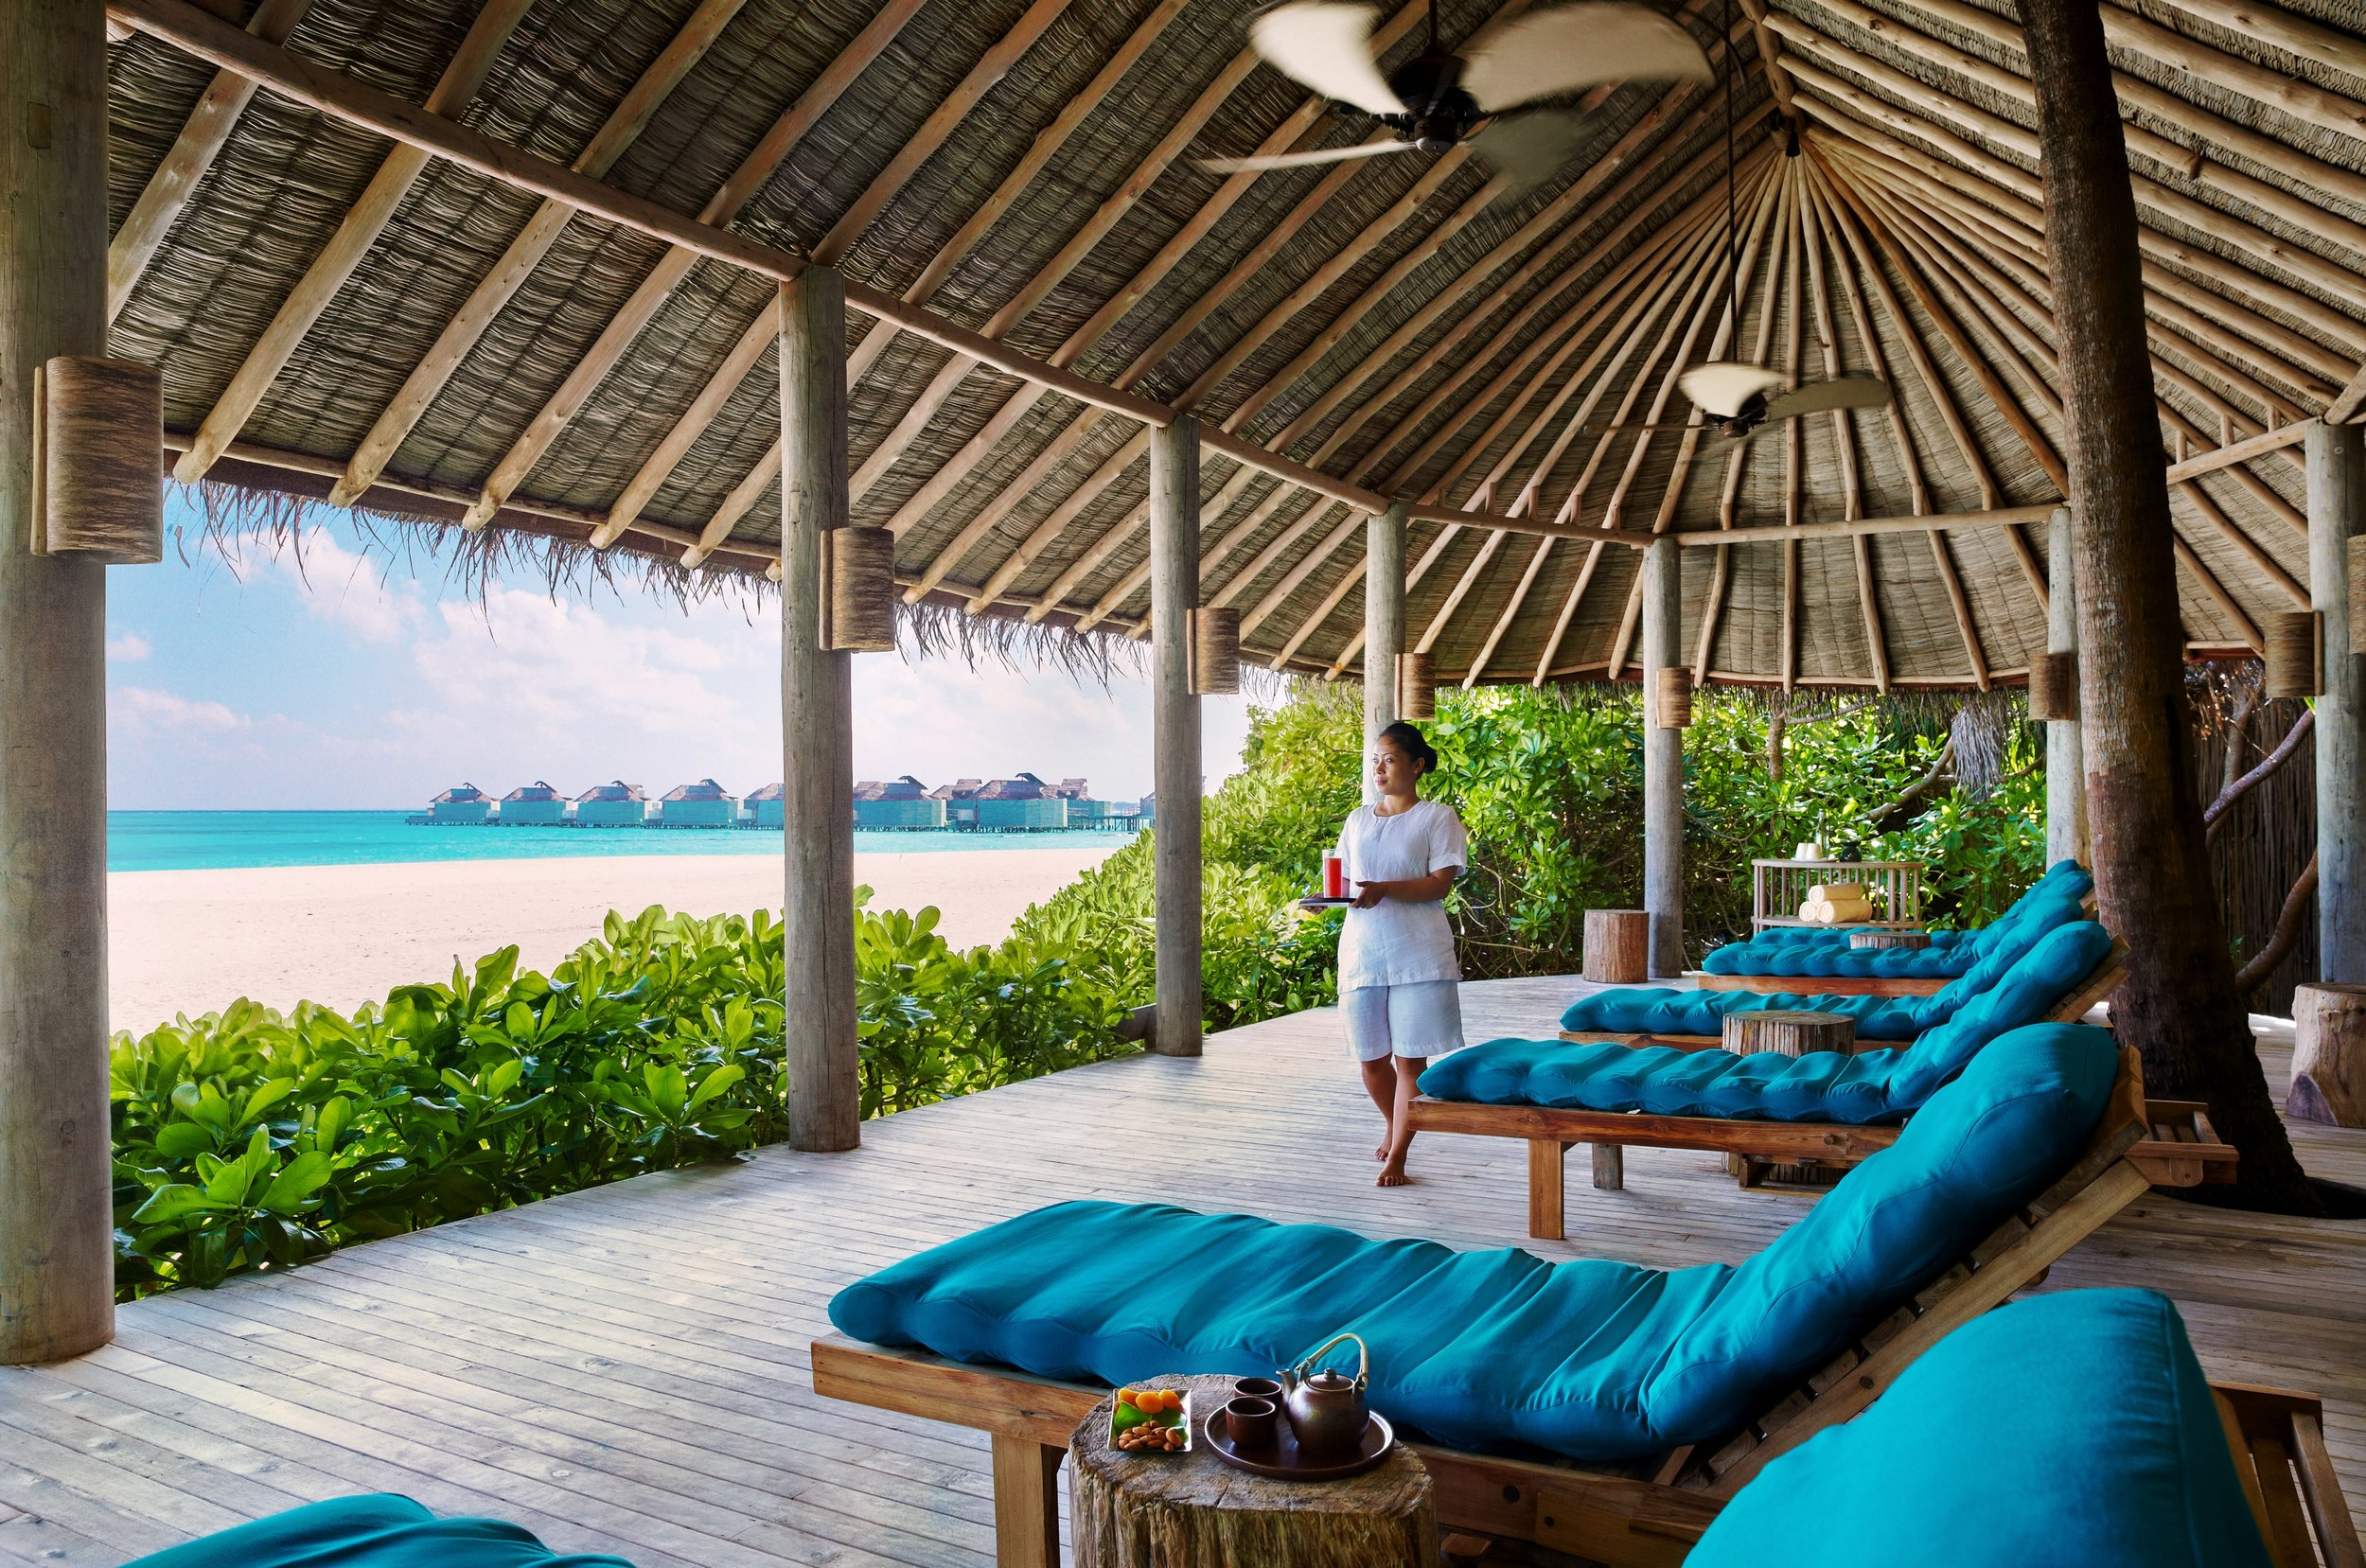 Six_Senses_Spa_relaxation_lounge_[6052-A4].jpg